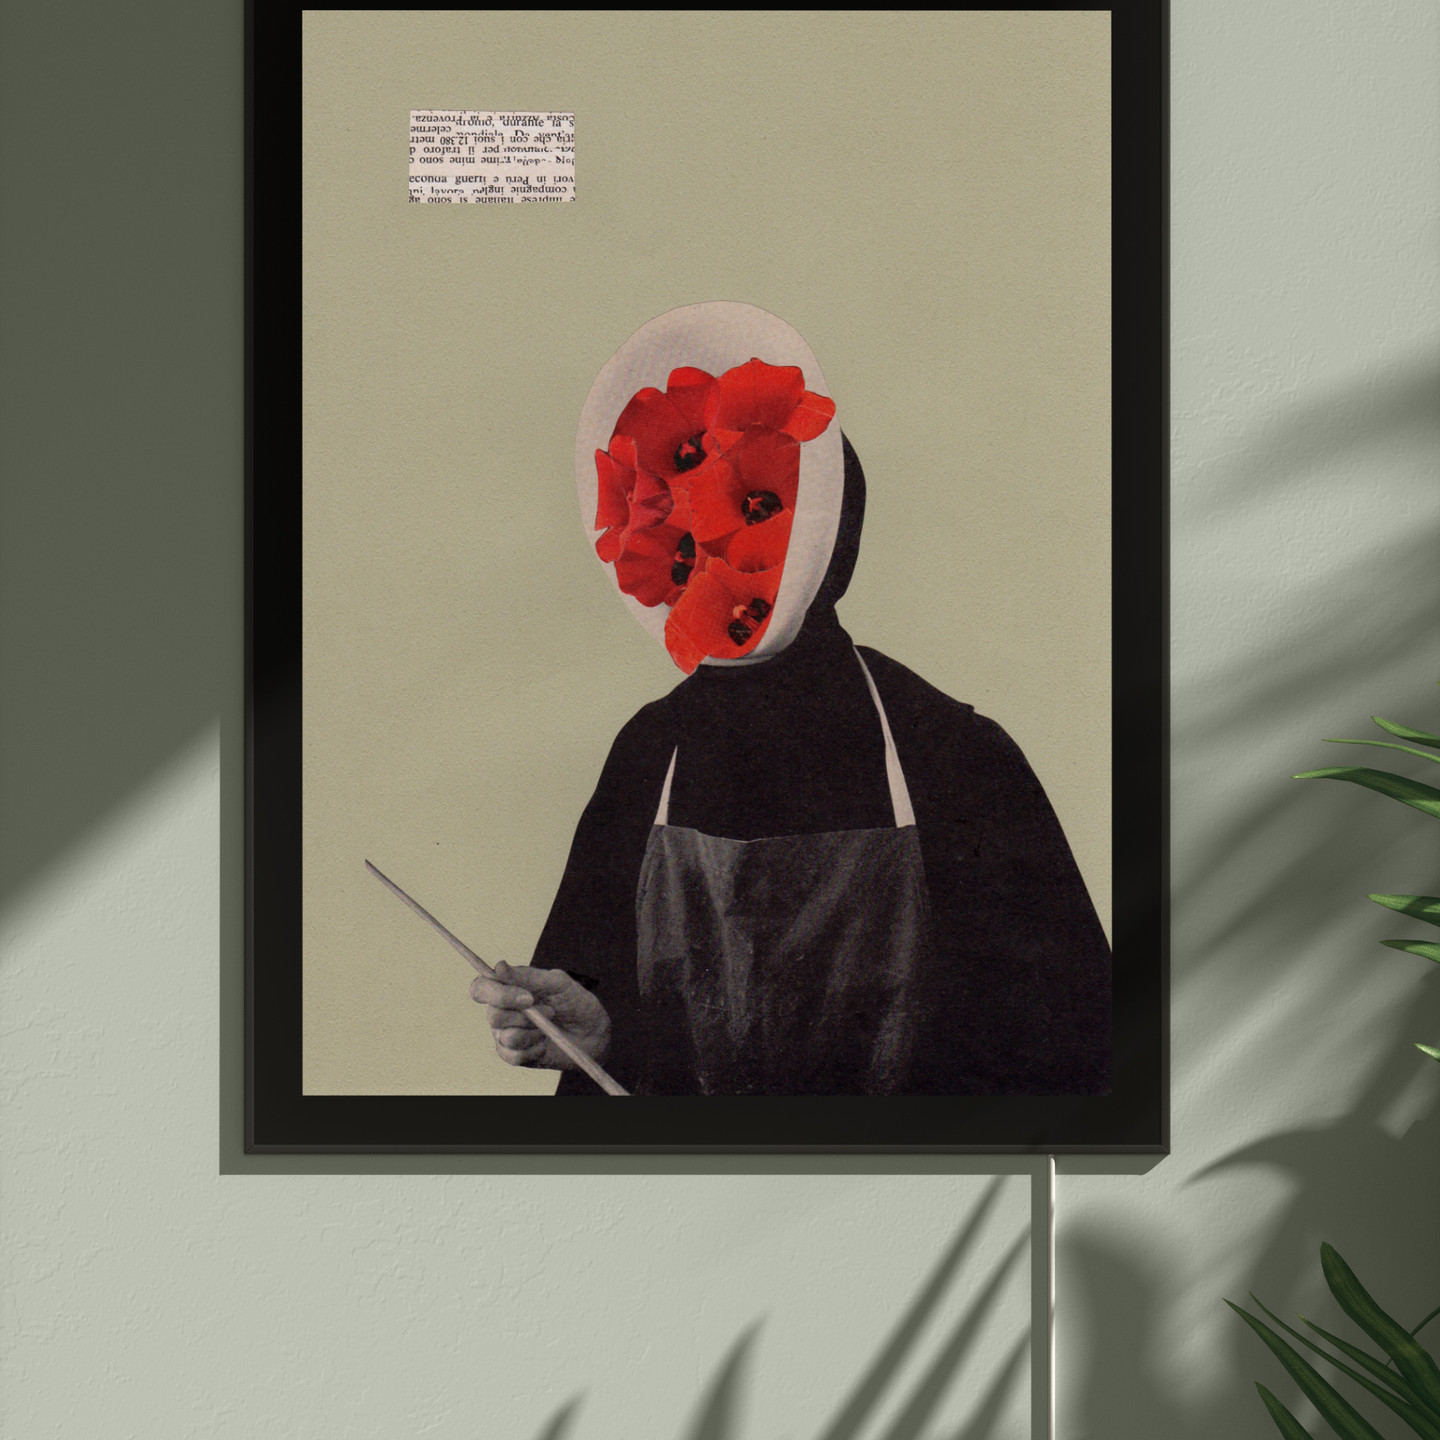 Untitled by Takuro Kishibe showing framed paper collage of human figure with red flowers